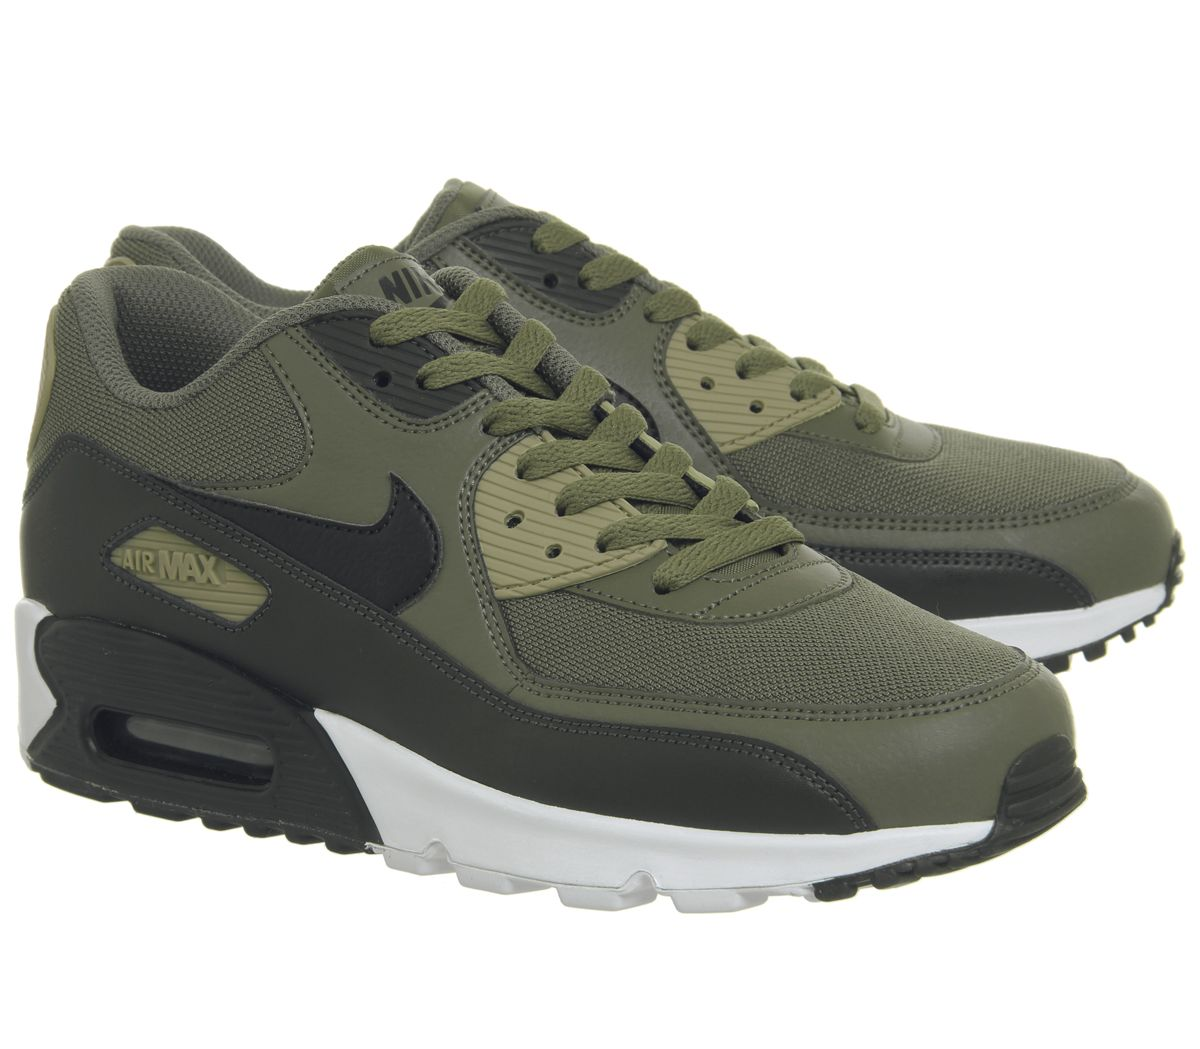 new concept 912a8 c7c52 Nike Air Max 90 Trainers Medium Olive Black - His trainers